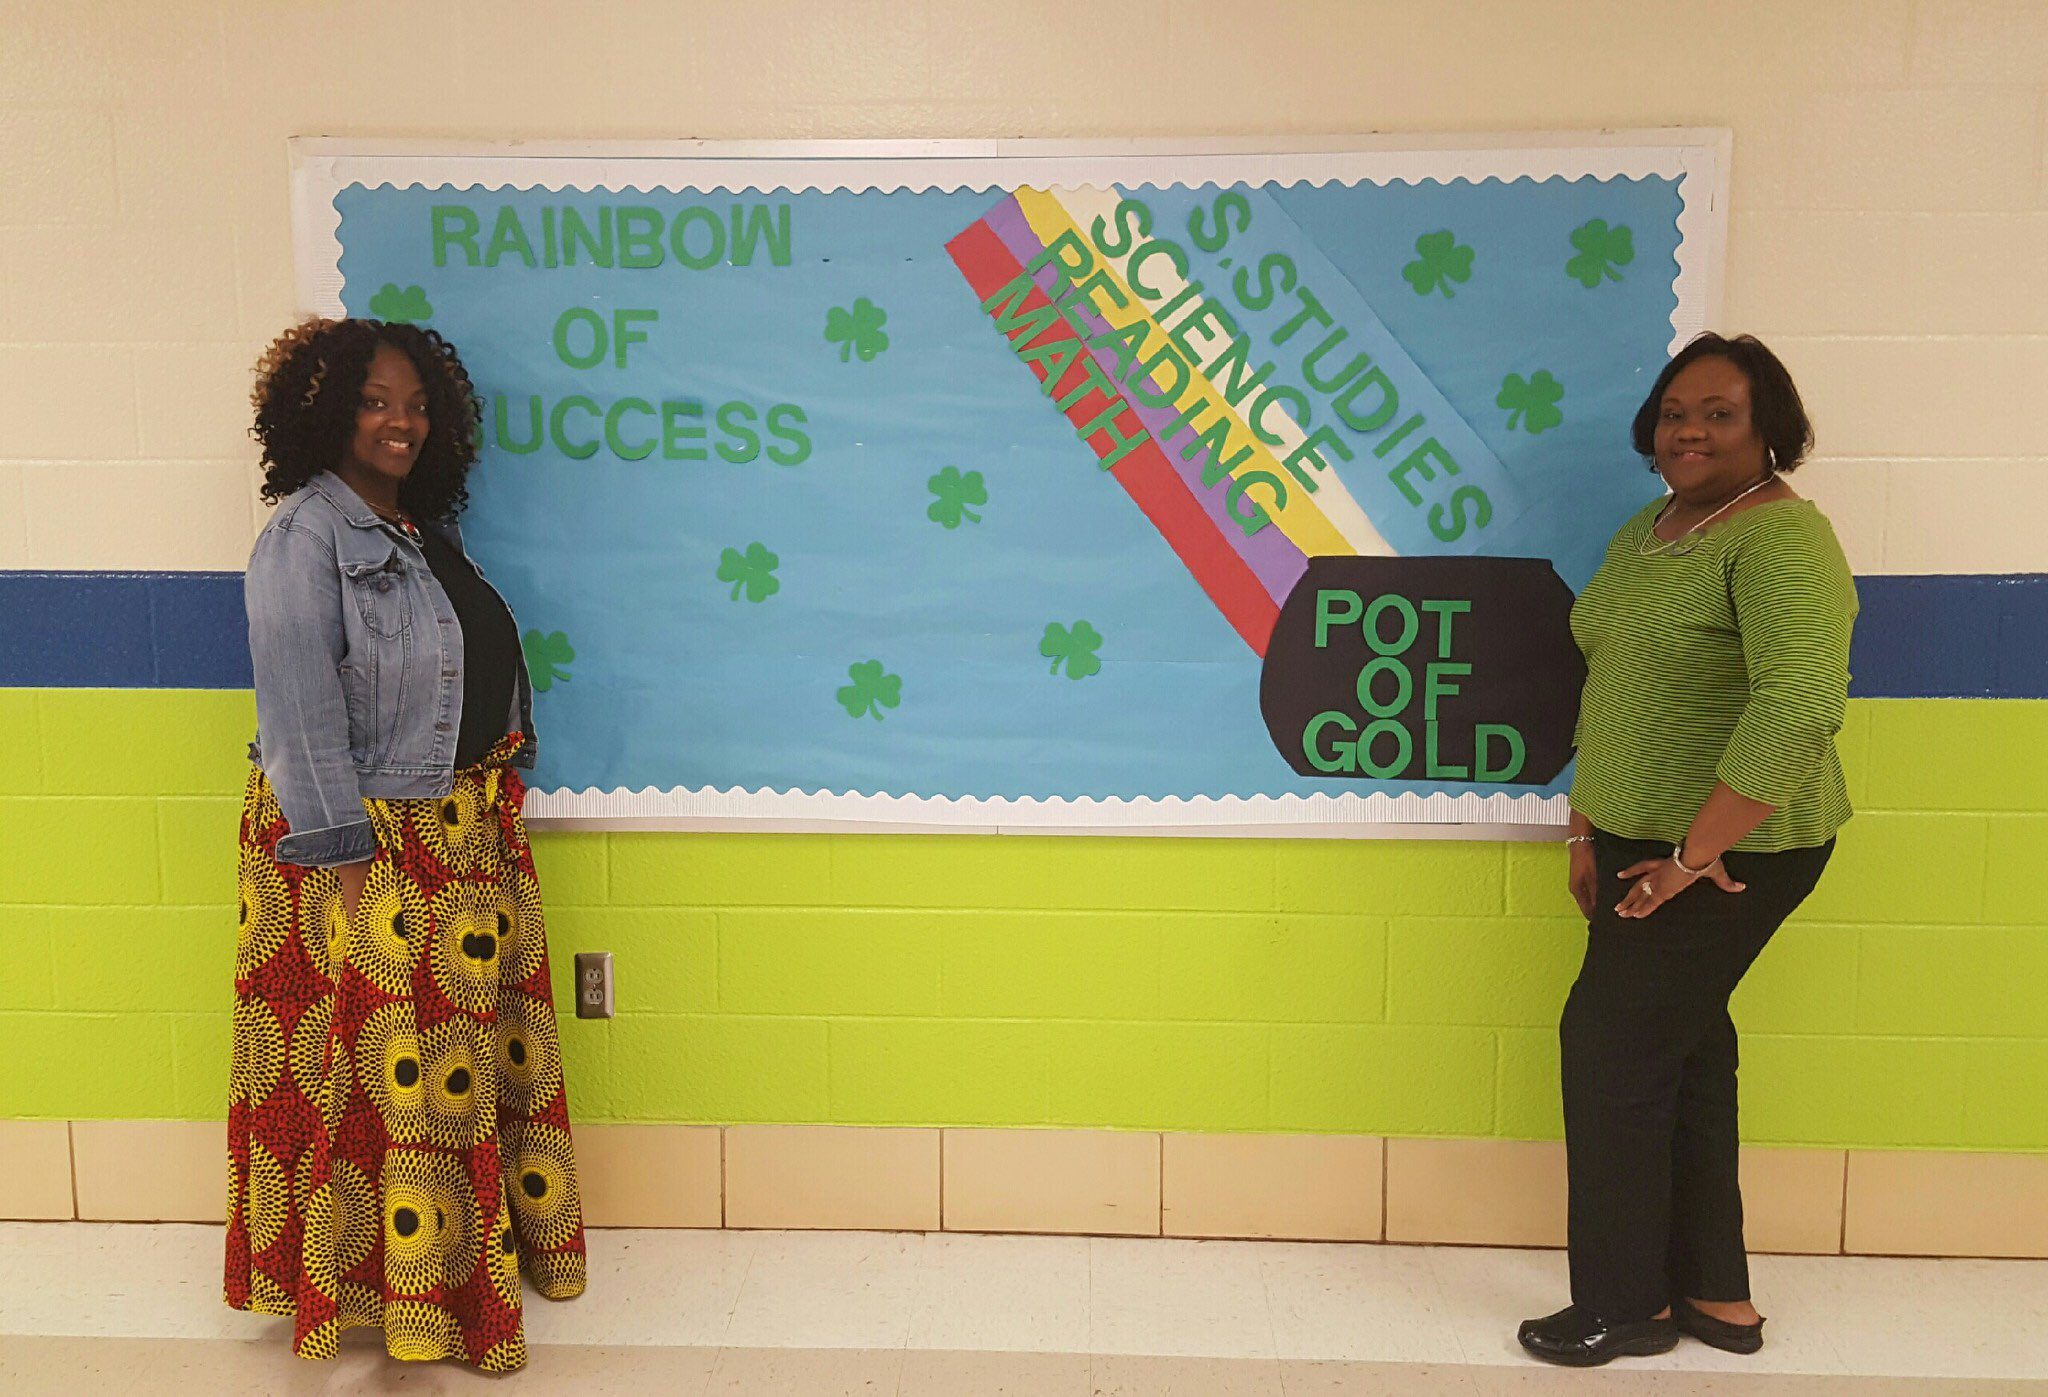 Ms. Dudley & Ms. Collins bring value to @NorthingtonElem through their pursuit of excellence in National Board Certification #ALNBCTWeek https://t.co/aiPfZDb7kt